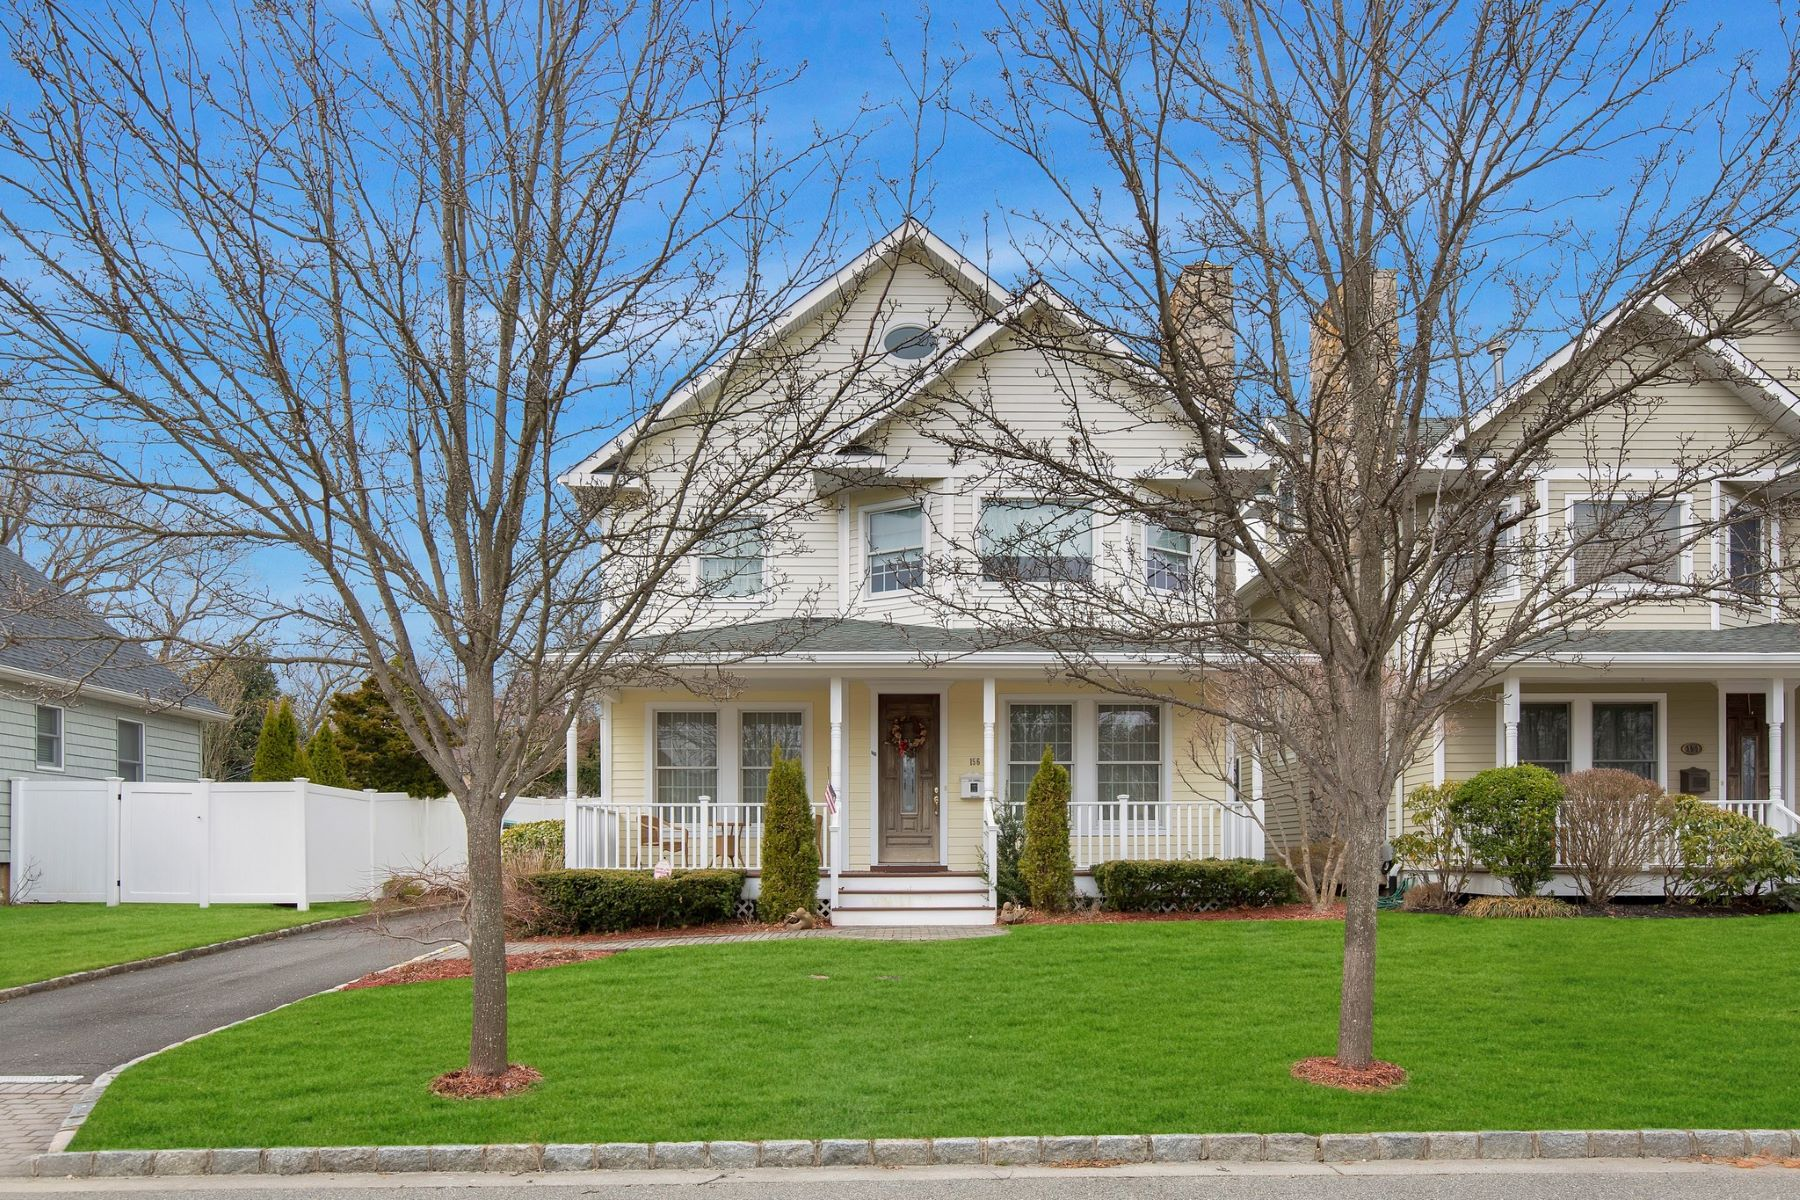 Single Family Homes for Active at Oyster Bay 156 Summers St Oyster Bay, New York 11771 United States